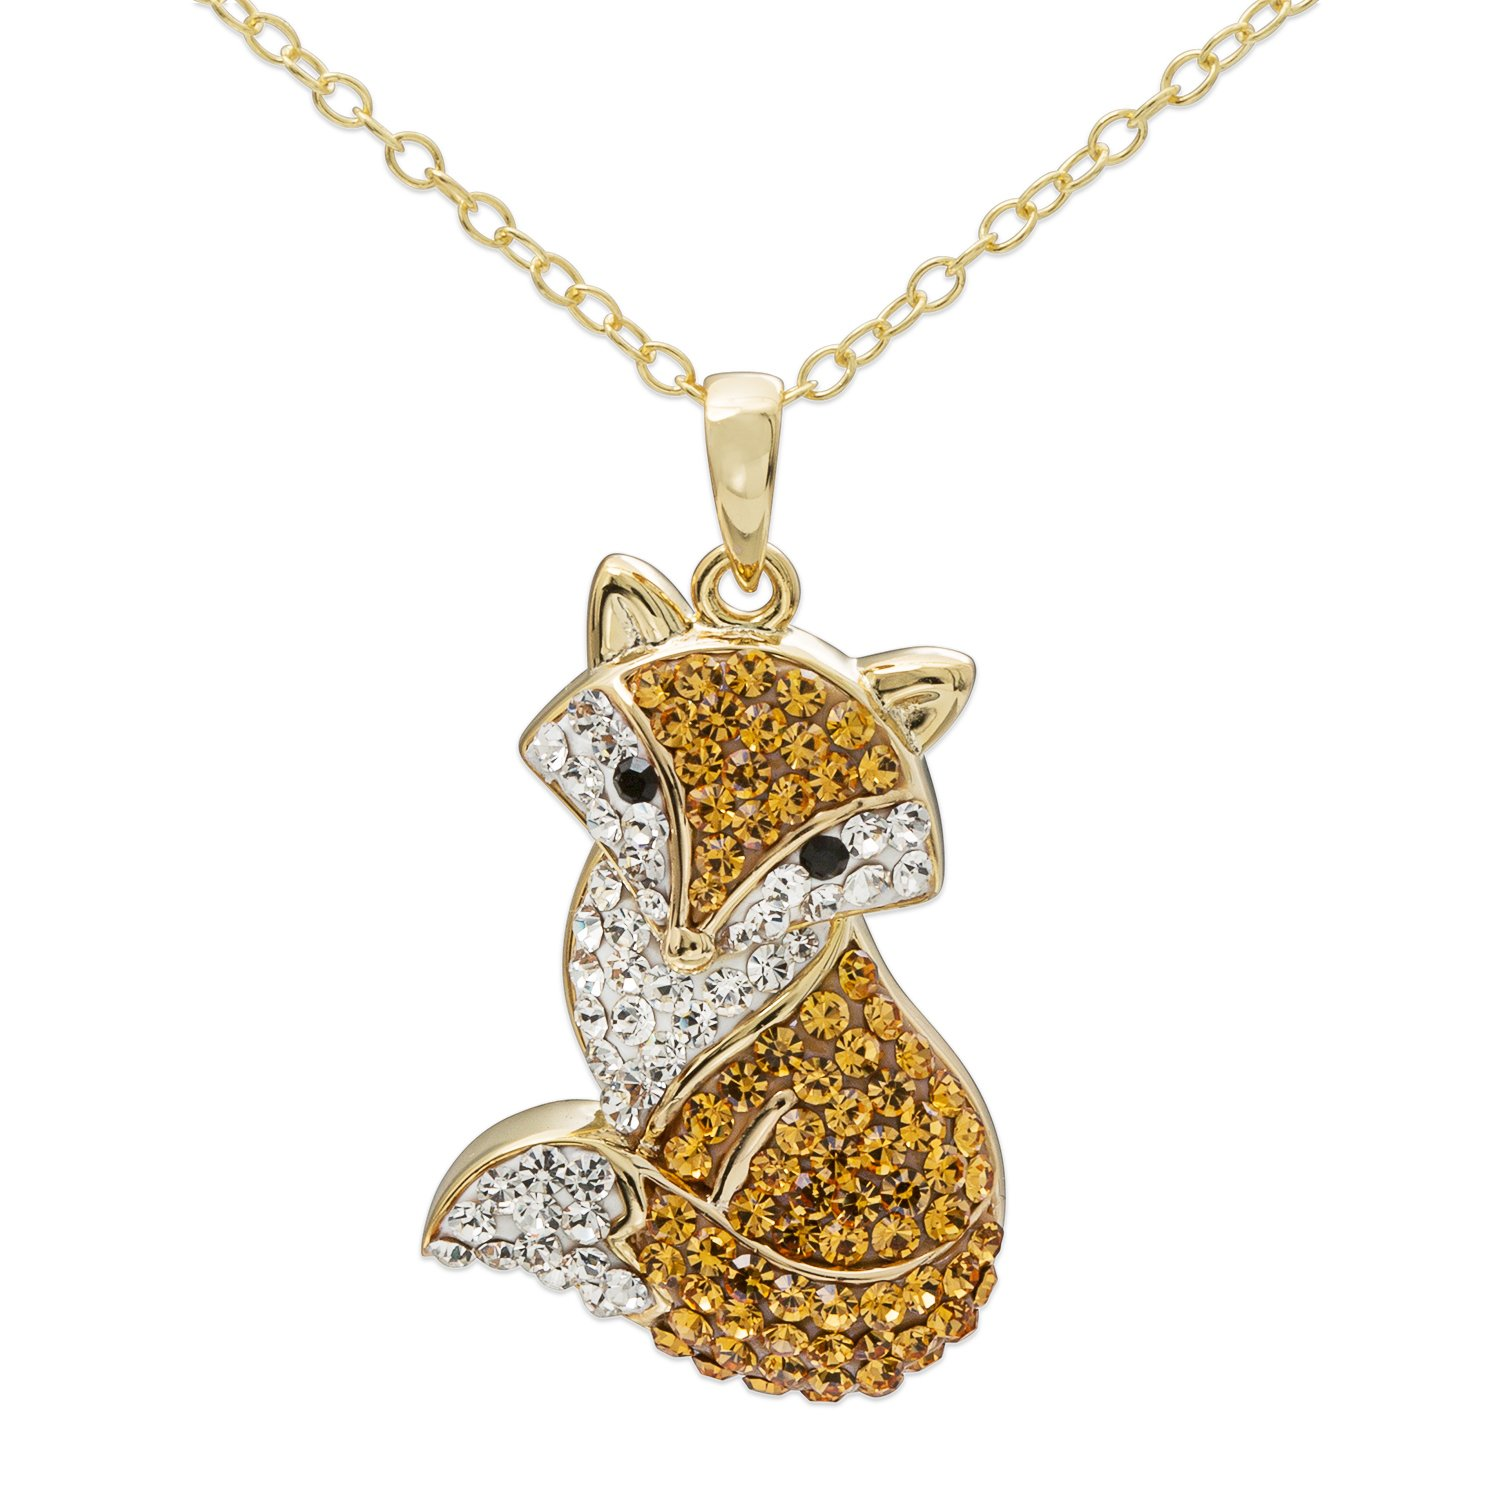 "Crystalogy Women's Sterling Silver Swarovski Crystal Fox Animal Pendant Necklace, 18"" Chain"